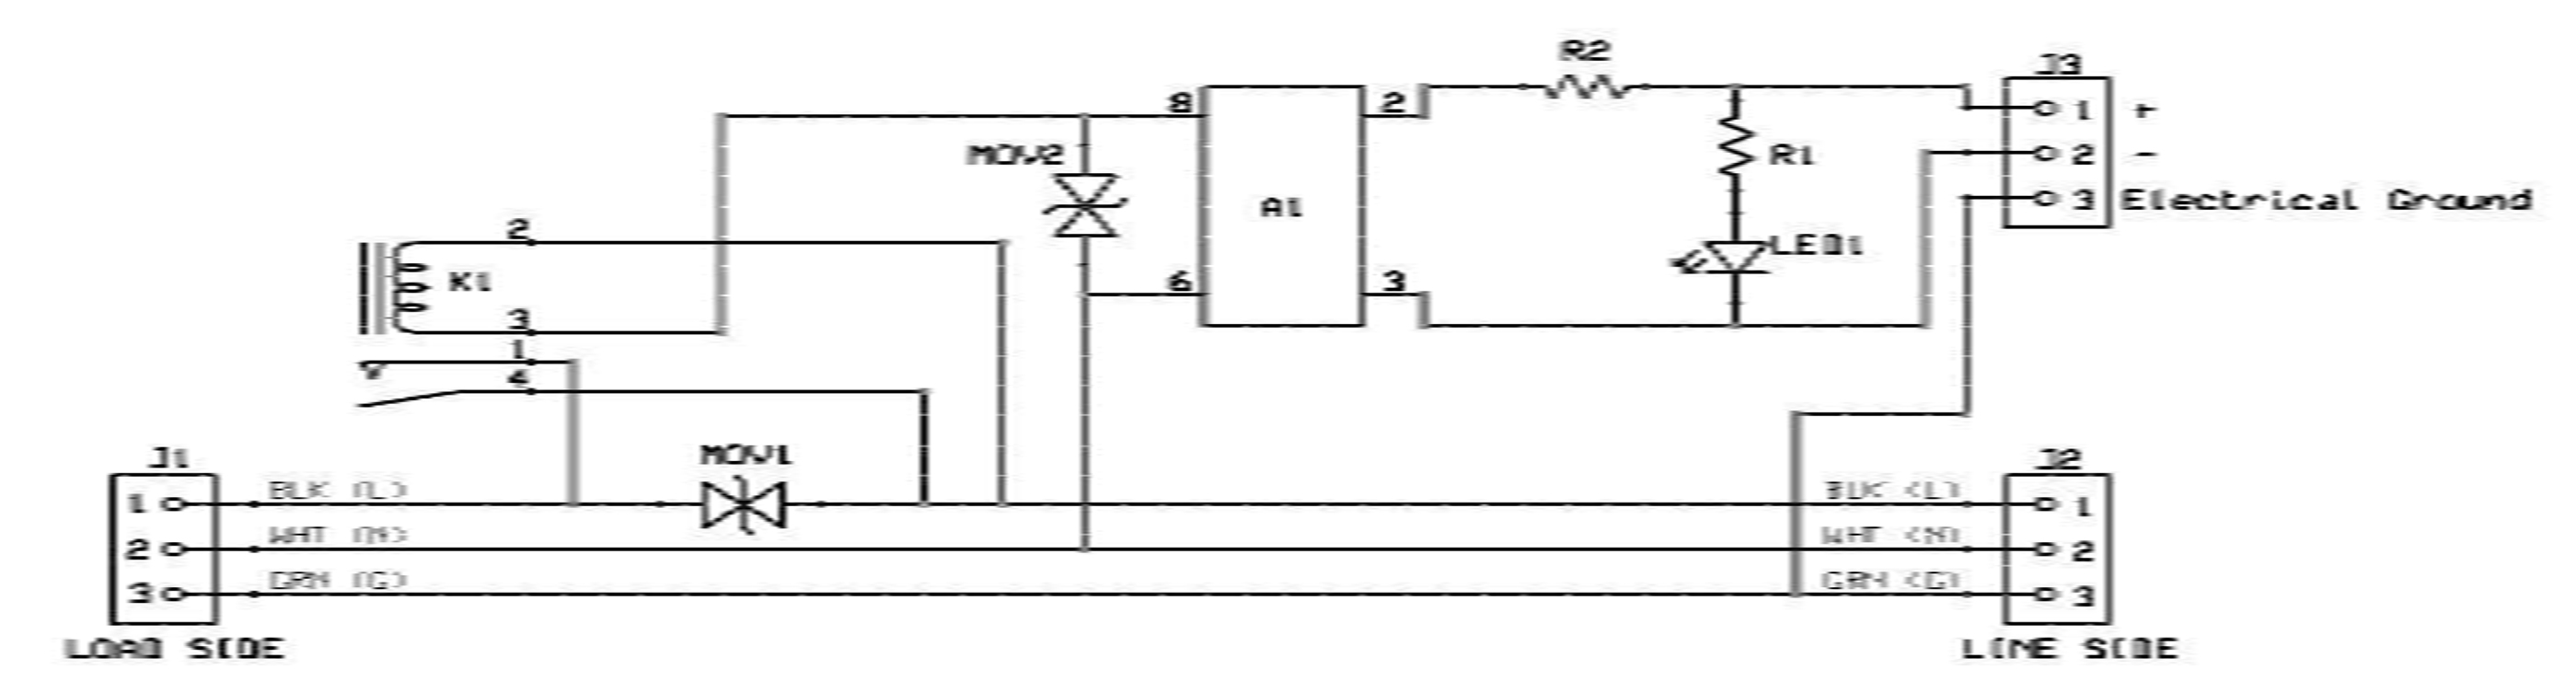 Drivers Relays And Solid State Mbed Schematic Diagram Come From Circuit Additional Power Supply For Usb Switch Tail Ii